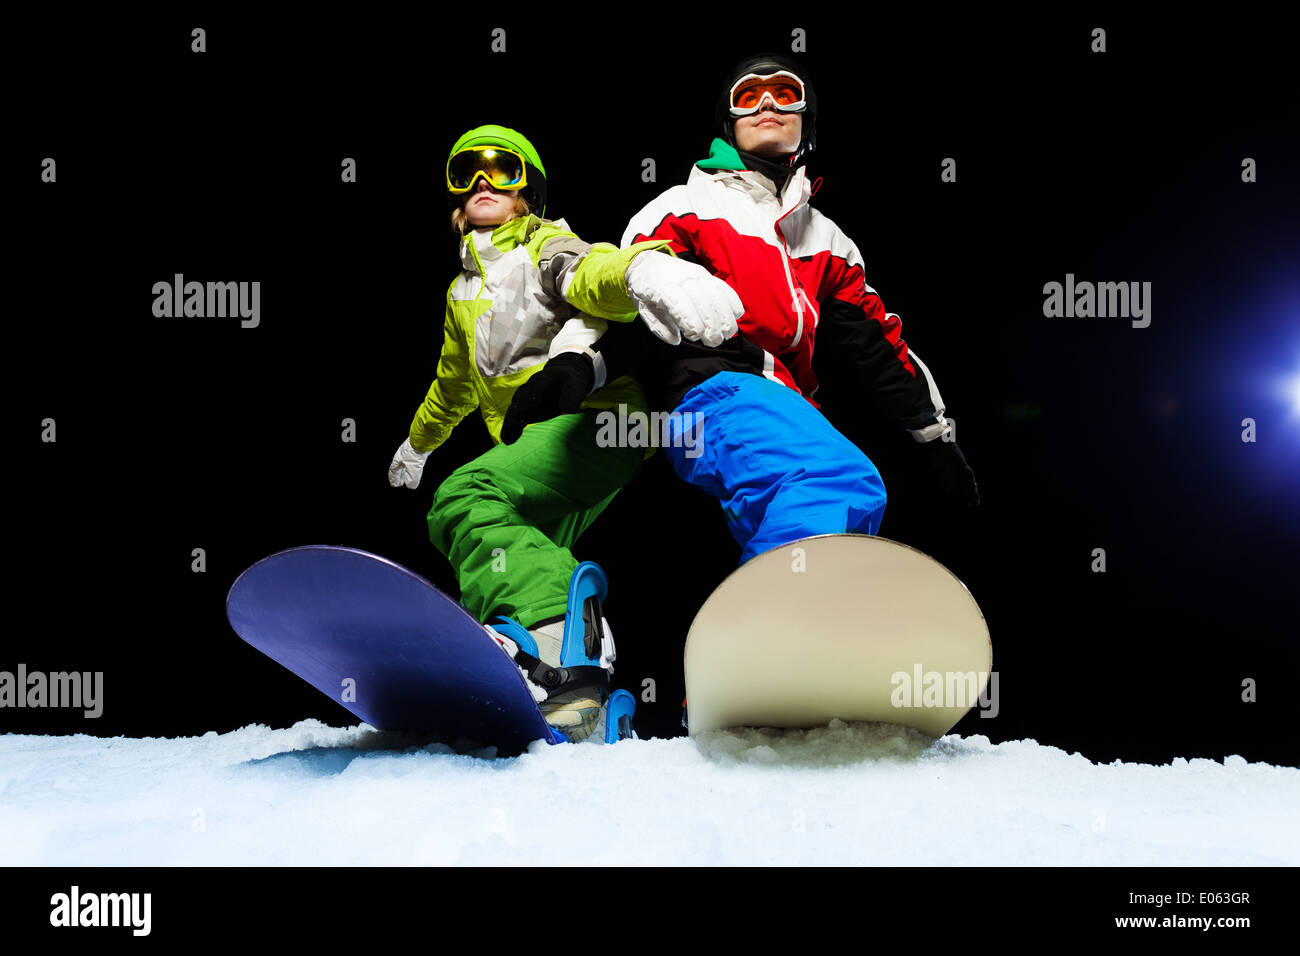 e5f7696b3526 Two Snowboarders Standing Snow Stock Photos   Two Snowboarders ...